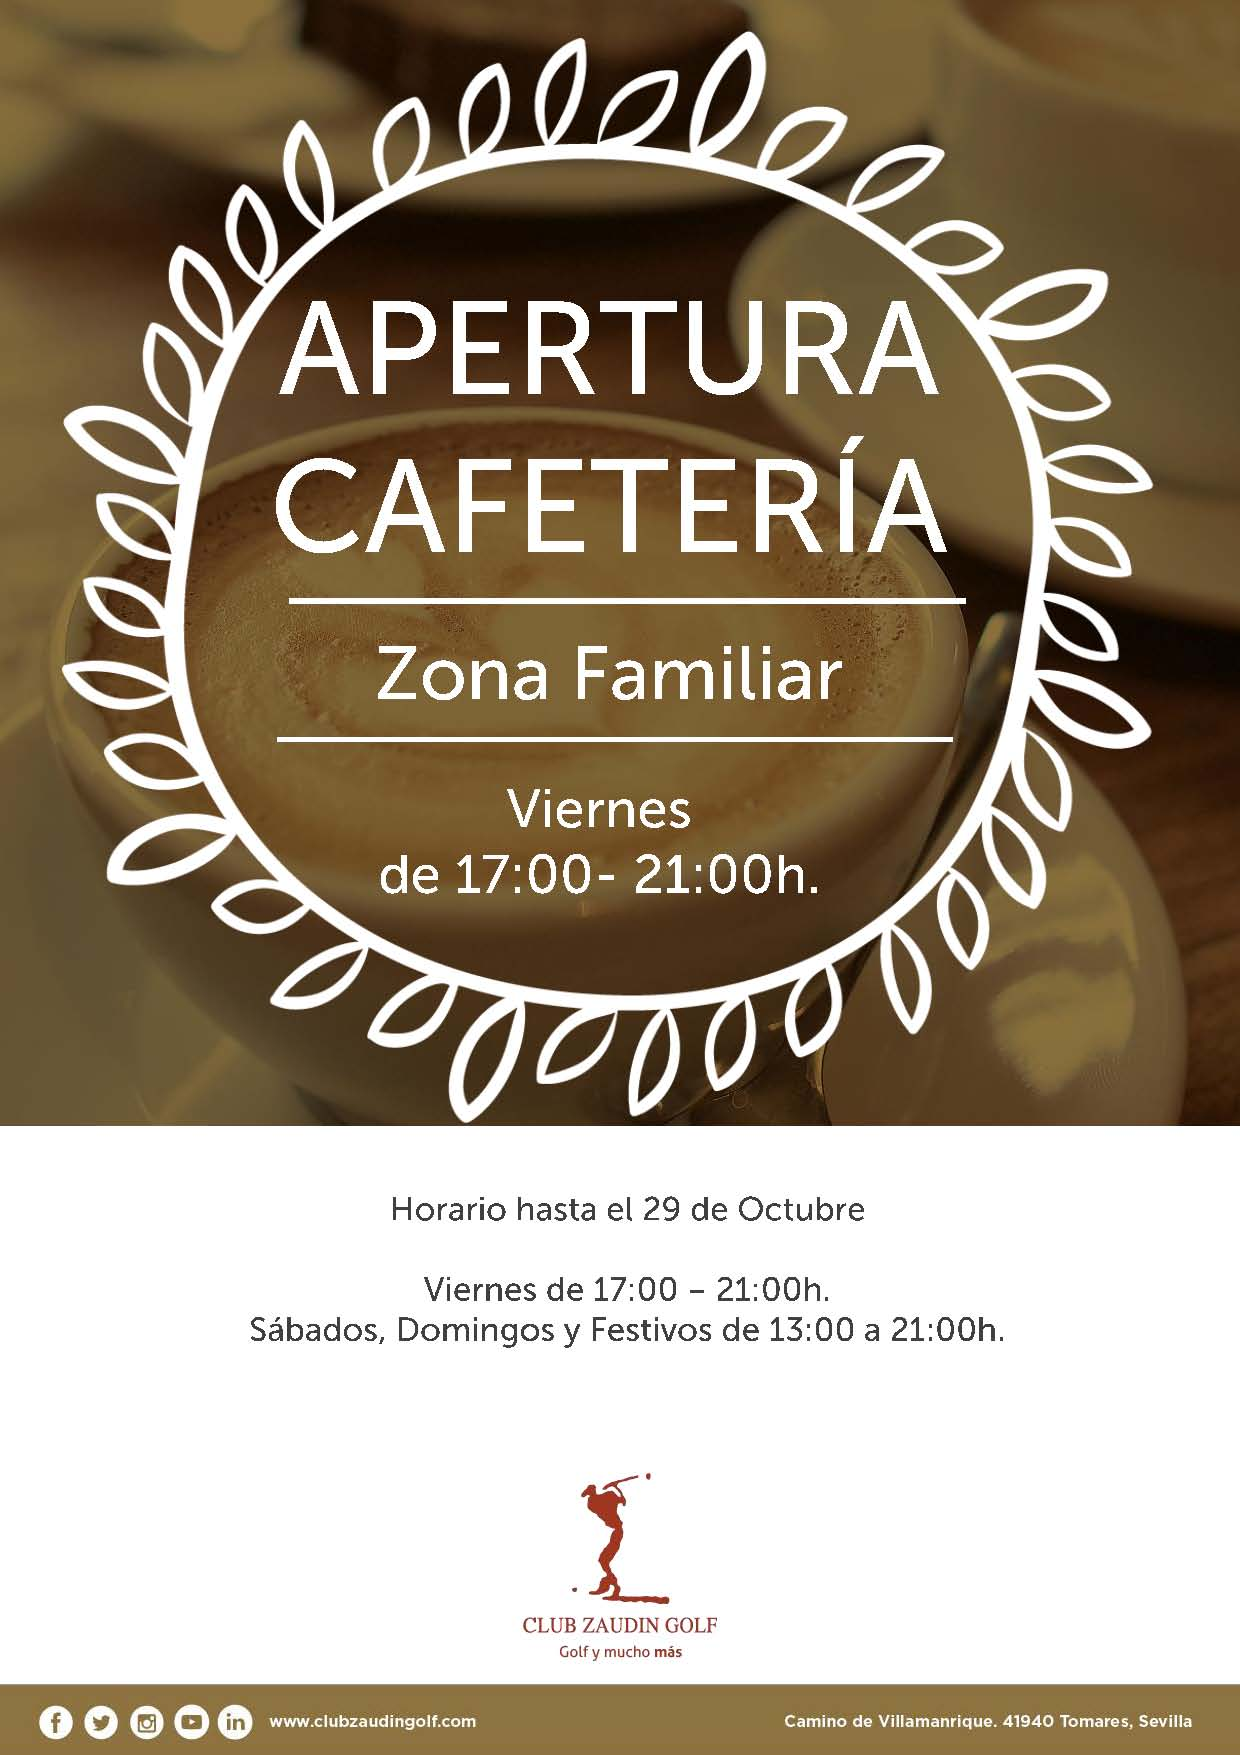 Horario Cafeteria Zona Familiar